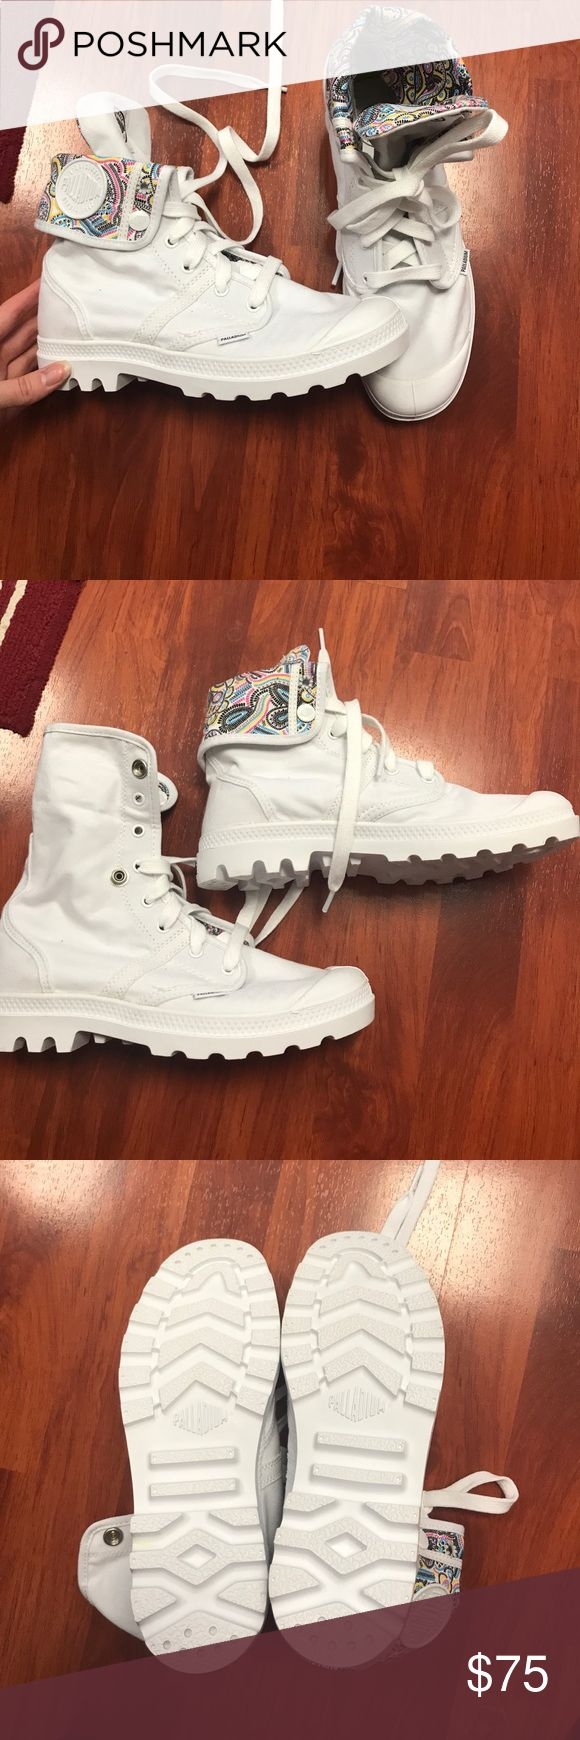 Brand new Palladium shoes- never worn!! These shoes are white and feature a paisley colorful design when folded. Can be worn folded or up. Never worn, I bought them a month ago and put off returning them until I realized it was past 30 days. Size 8.5. Palladium Shoes Lace Up Boots